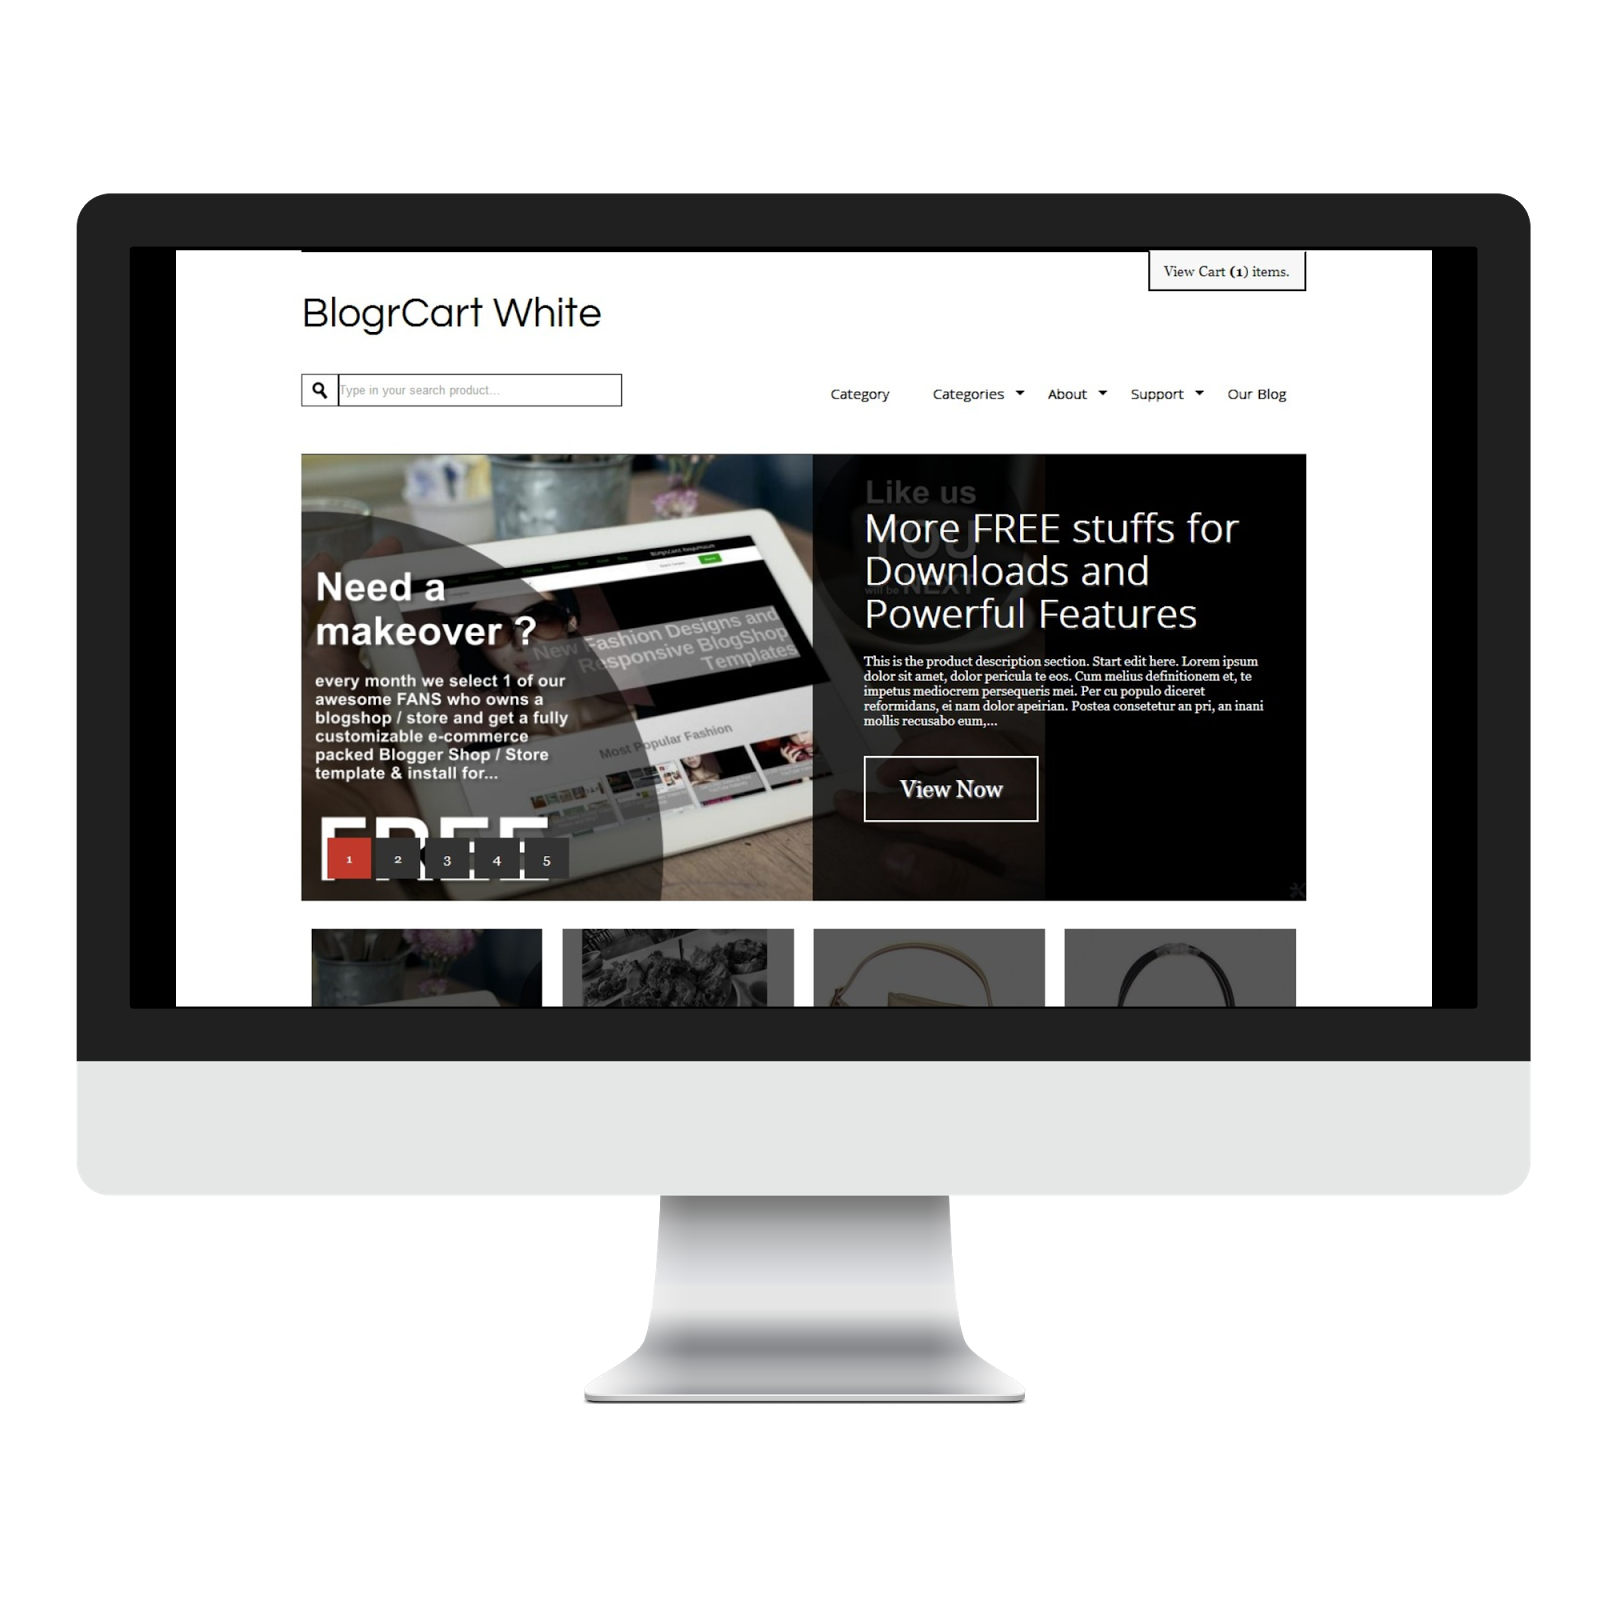 BlogrCart White responsive shopping cart blogger template